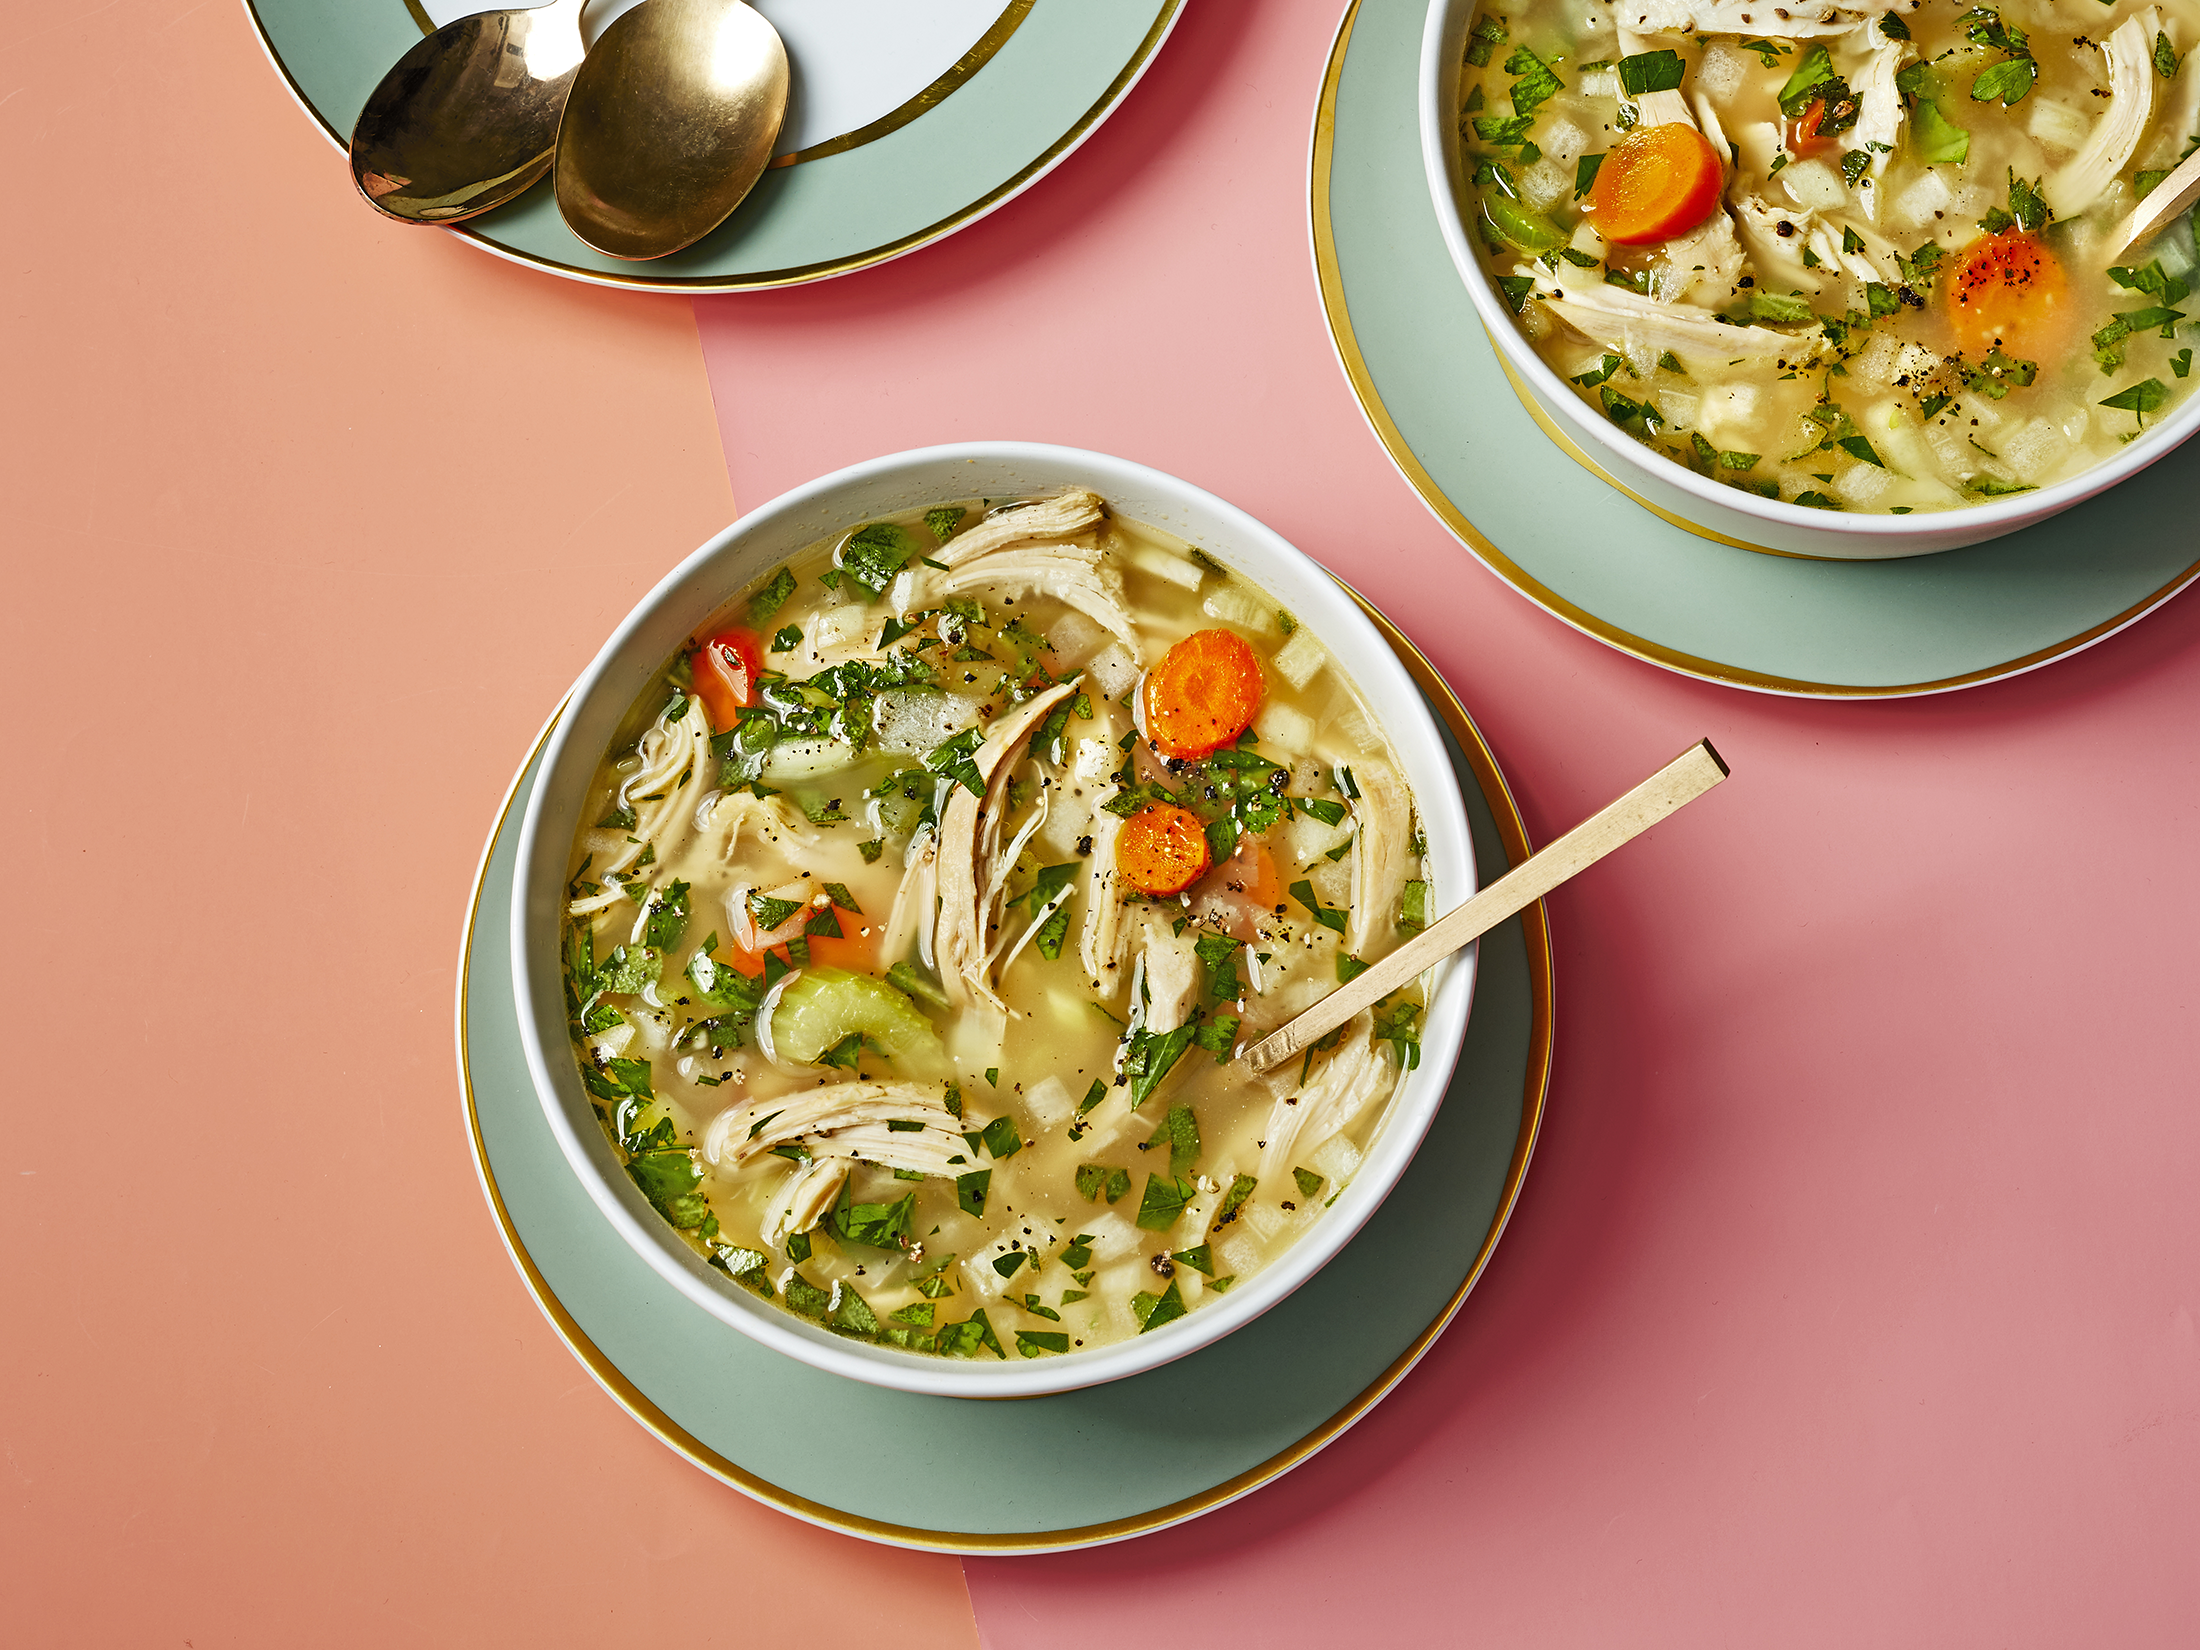 How to Doctor Canned Soup to Make It an Actually Exciting Meal